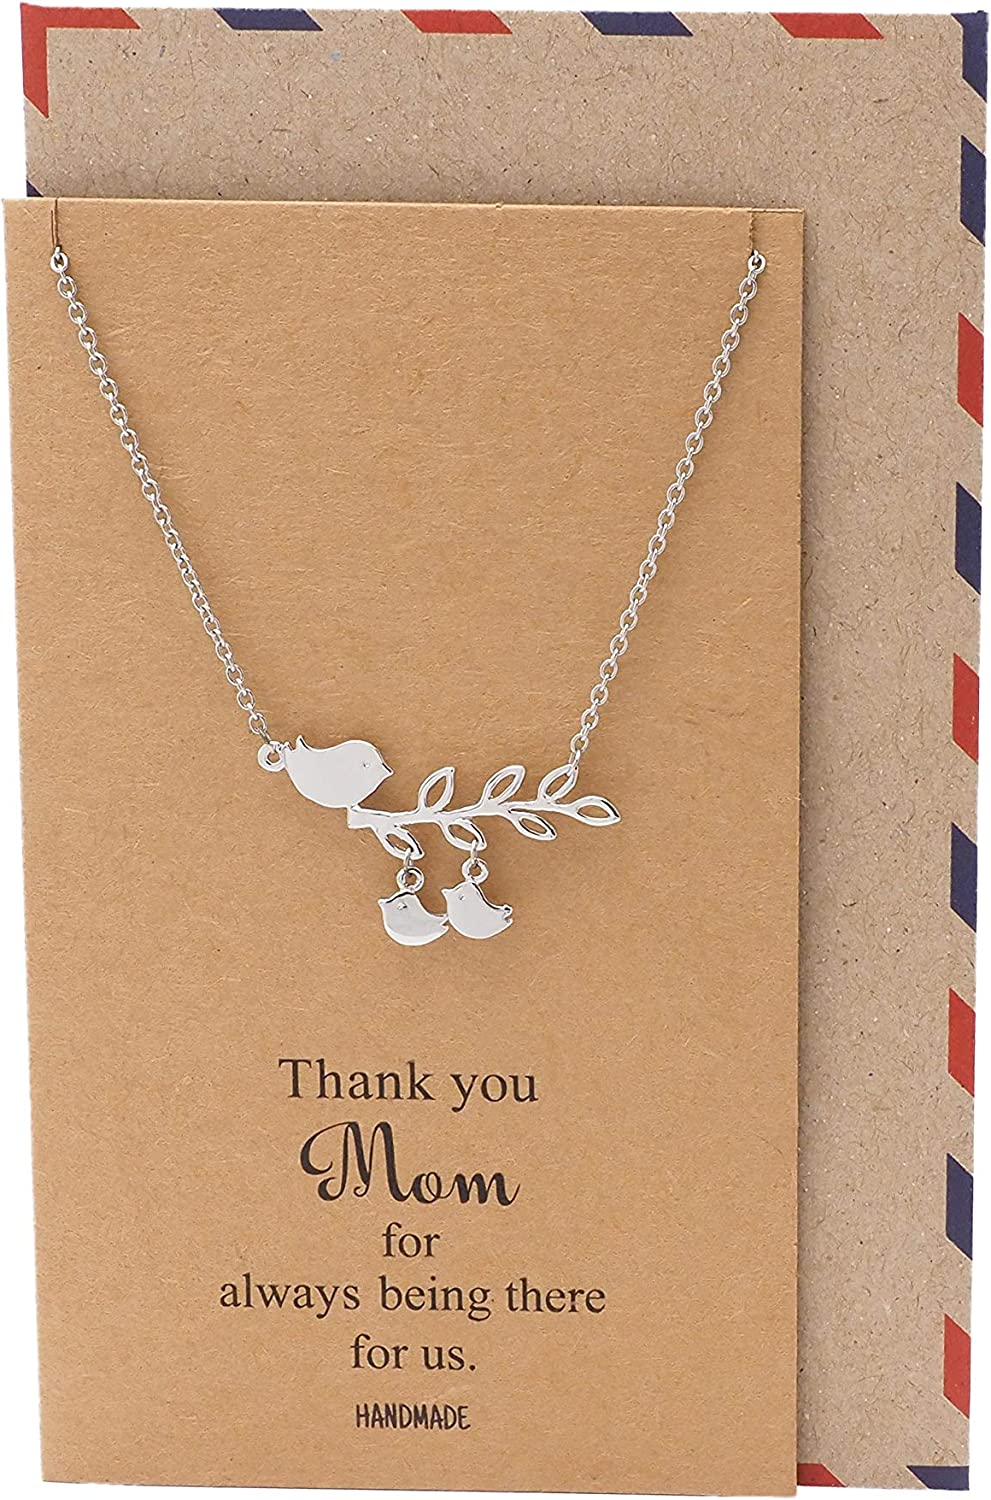 Quan Jewelry Handmade Mother's Day Daughters Mom Necklace Online Challenge the lowest price limited product Gifts